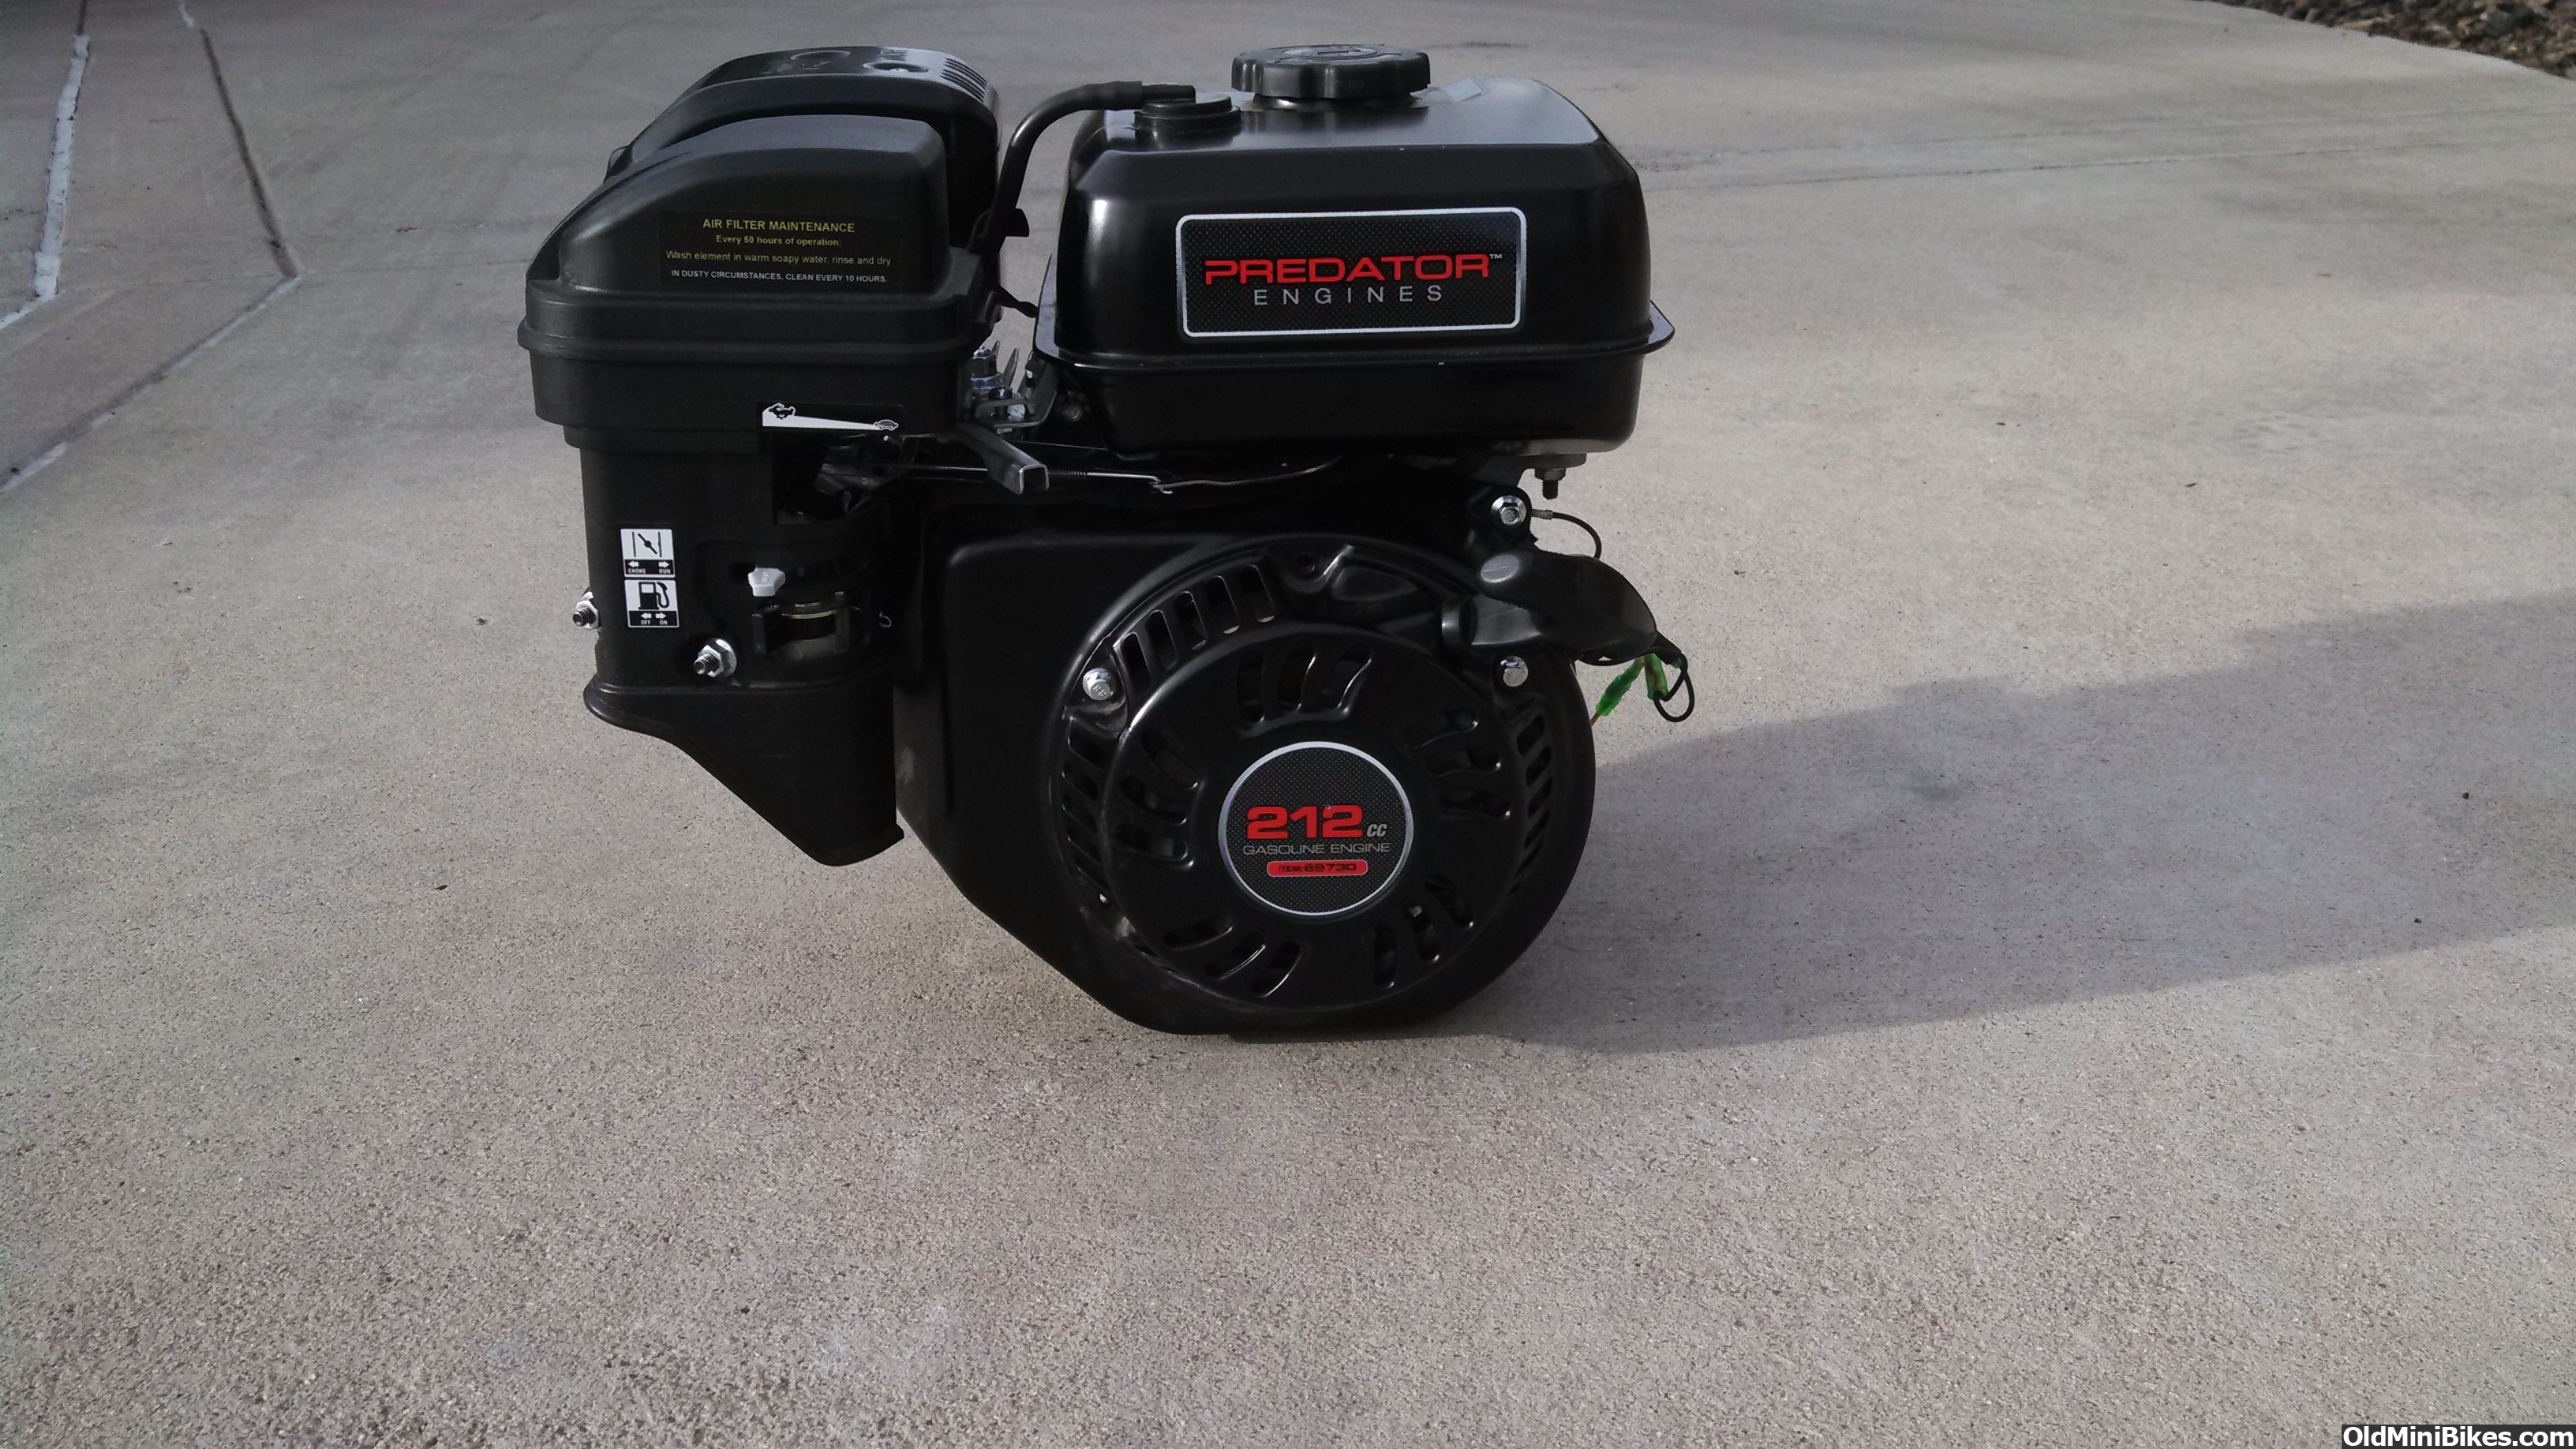 predator 22 hp diagram engine wiring with Predator 6 5 Hp Engine Diagram on 25 Hp Kohler Engine Diagram further Predator 6 5 Hp Engine Diagram further Riding Mower Clearance Sales moreover Predator 6 5 Hp Engine Diagram furthermore Kohler V Twin Wiring Diagram Get Free Image About.